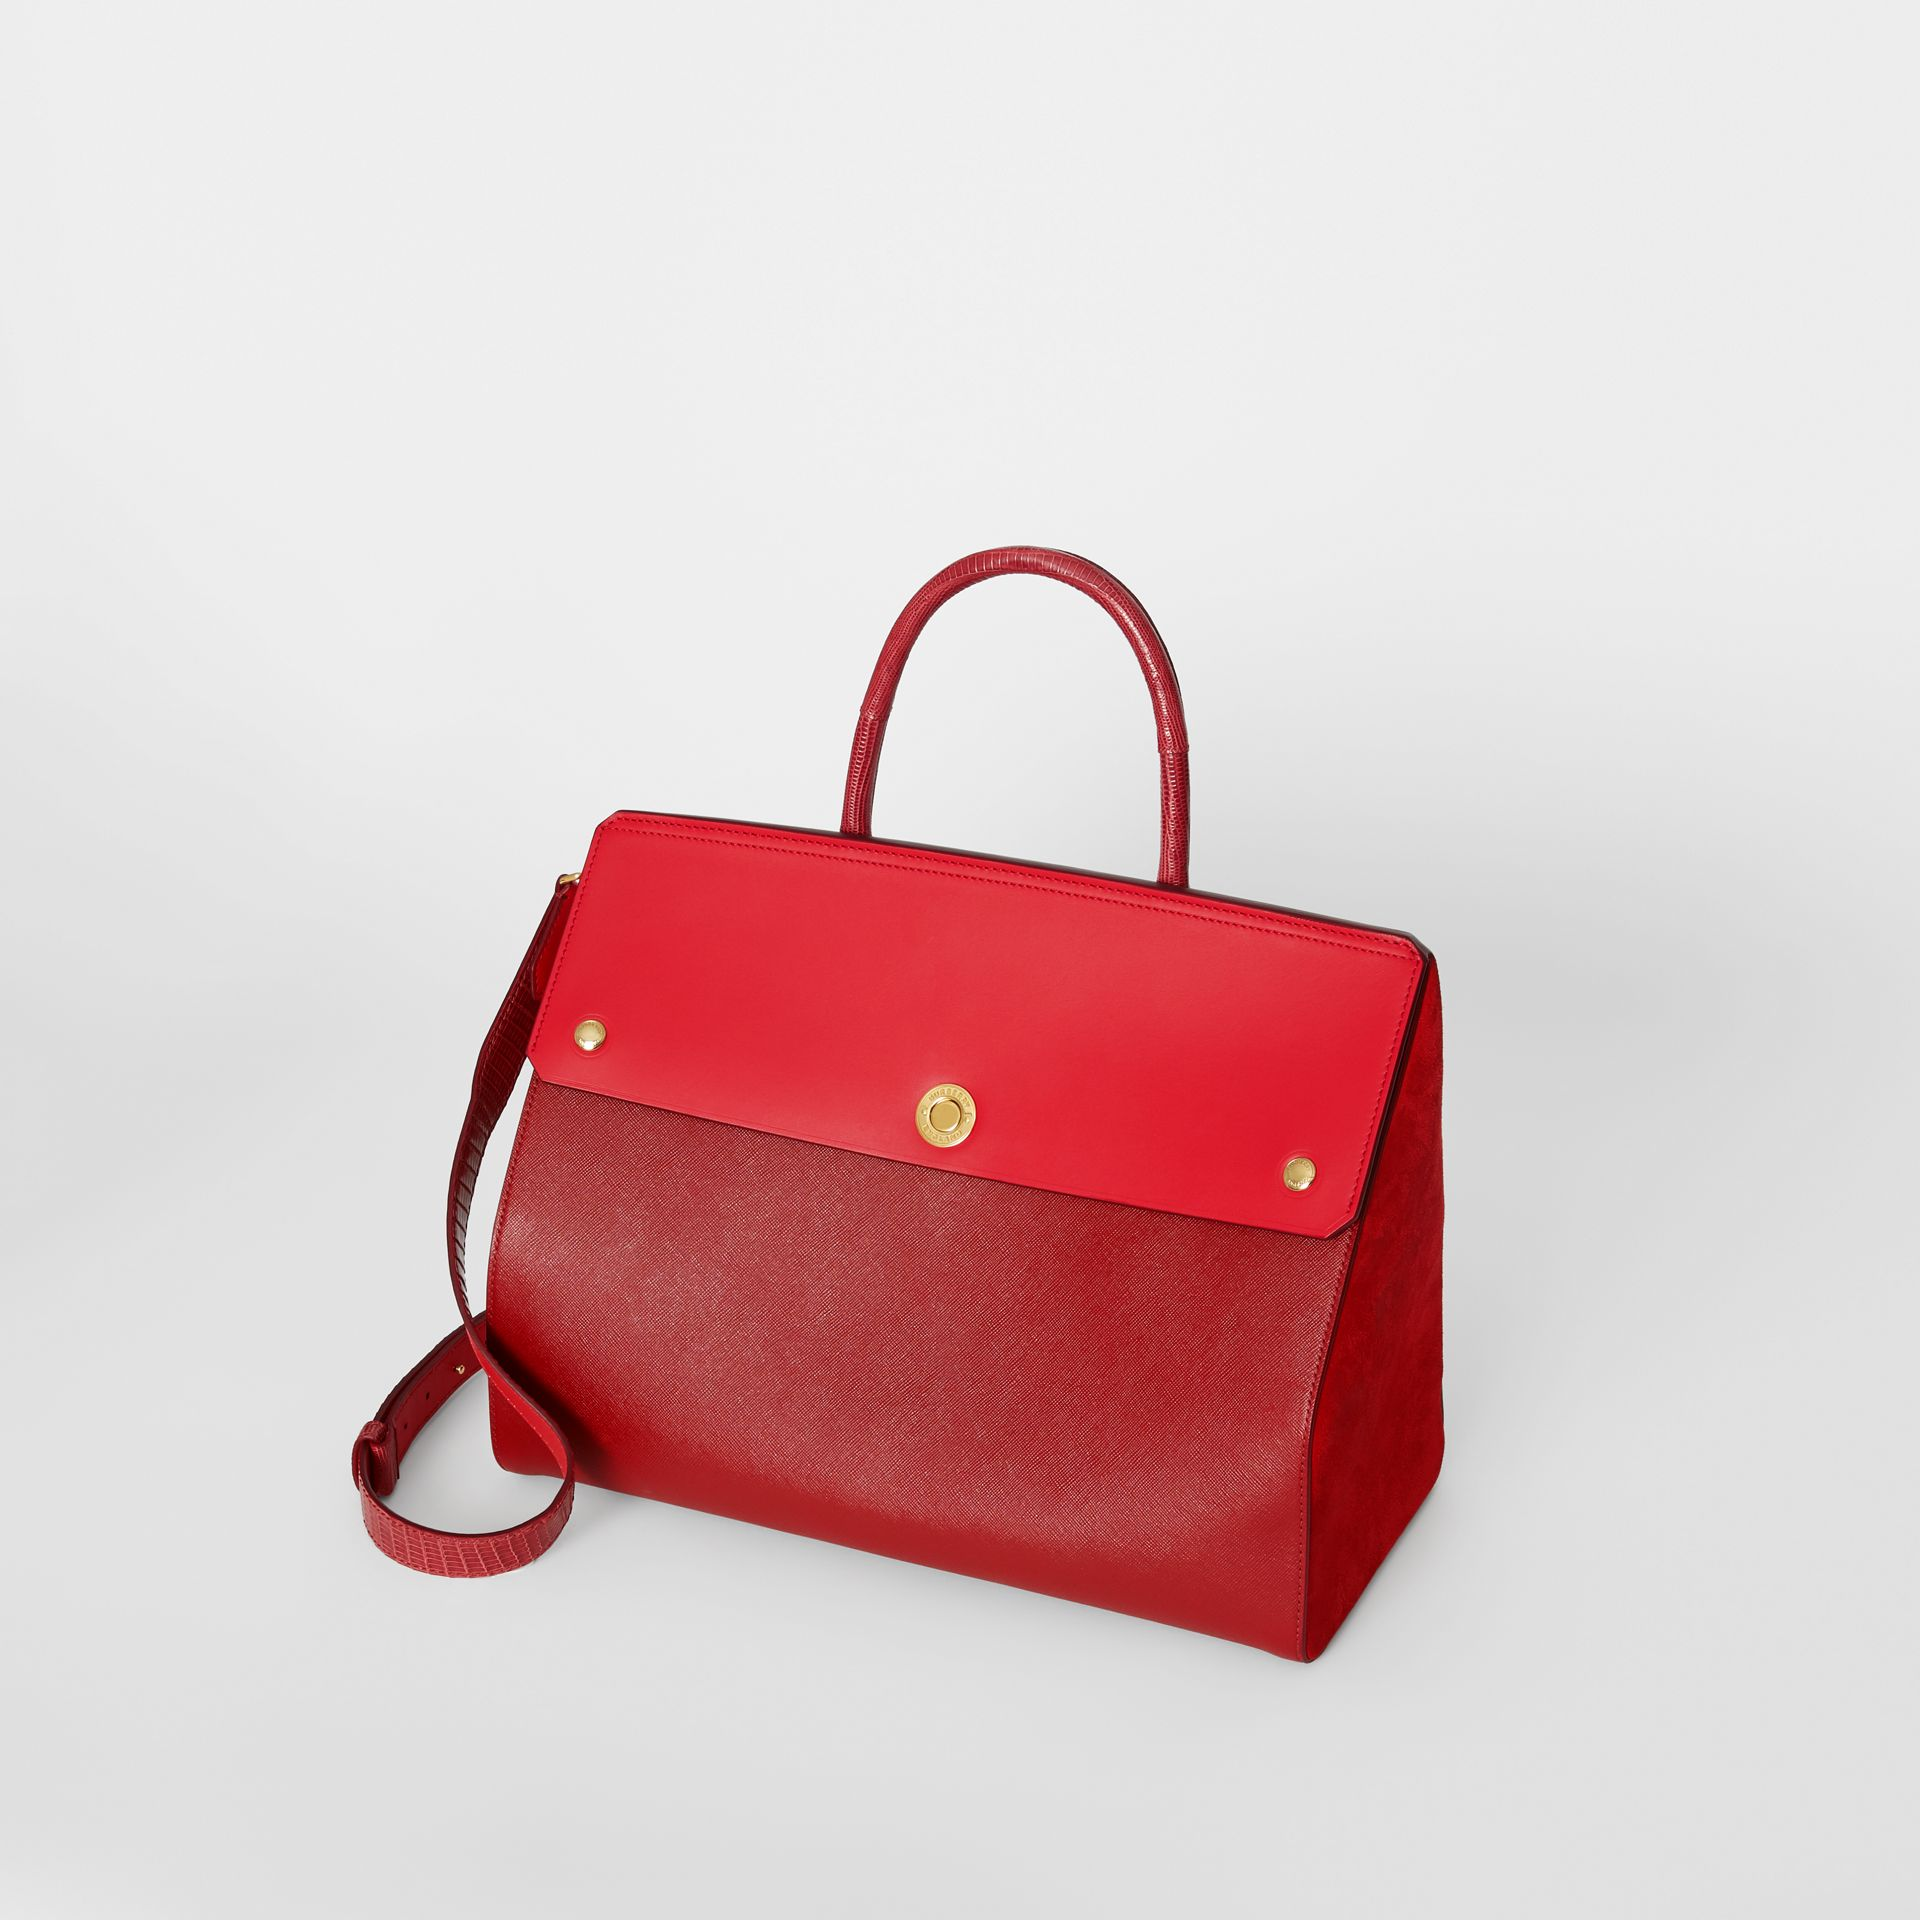 Small Leather and Suede Elizabeth Bag in Bright Military Red - Women | Burberry United States - gallery image 3